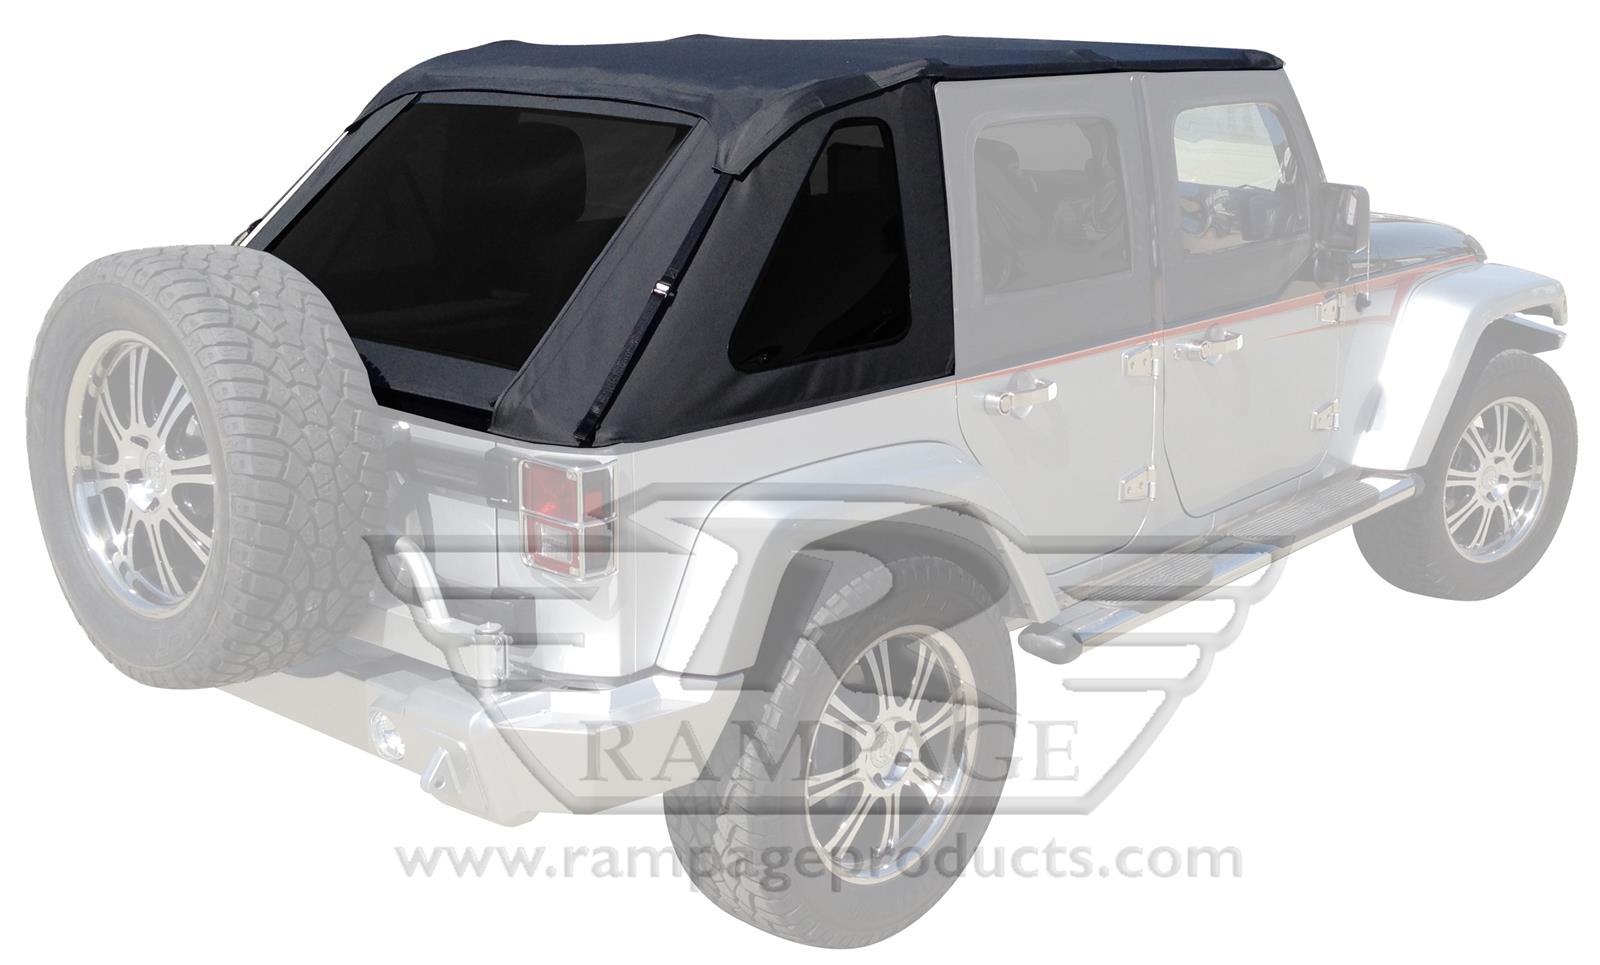 JEEP WRANGLER Rampage Trail Top Frameless Soft Tops 106035   Free Shipping  On Orders Over $99 At Summit Racing